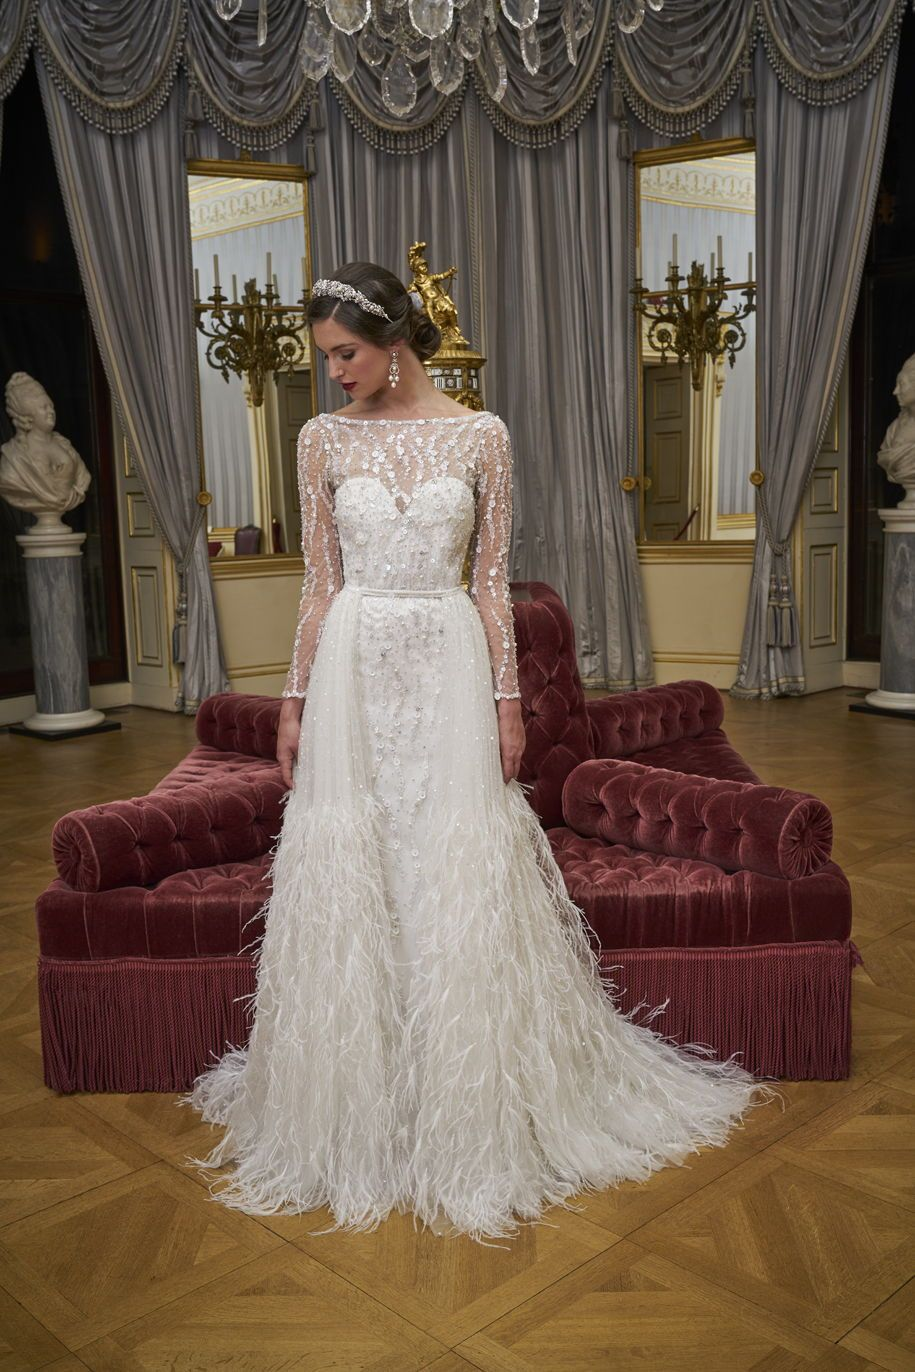 Stunning Beaded Wedding Dress Featuring Long Sleeves And A Slim Skirt With A Detachabl Sparkly Wedding Dress Wedding Dresses Beaded Wedding Dress With Feathers